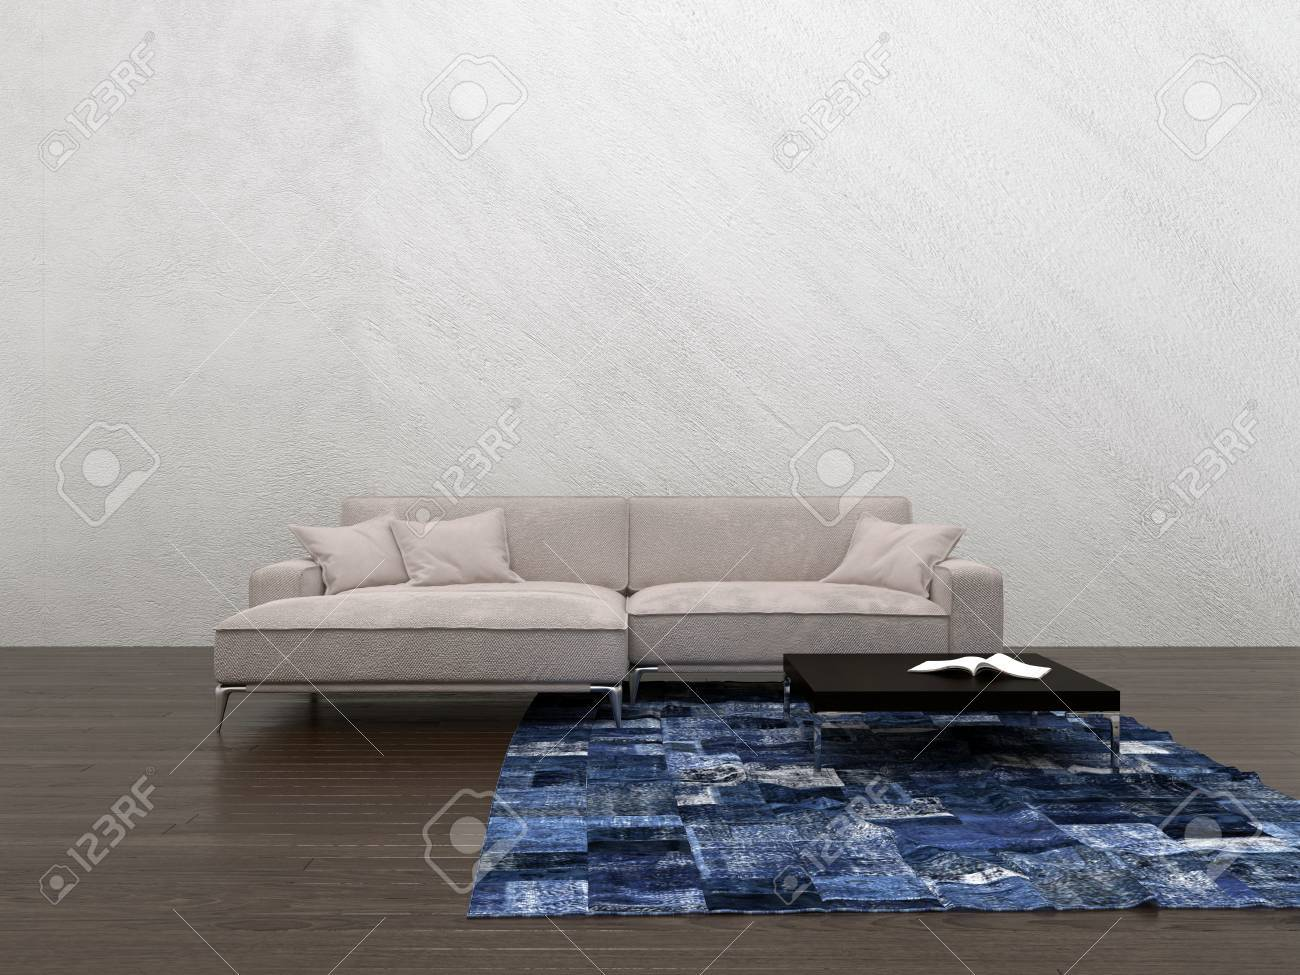 Large Generic Modular Couch In A Minimalist Living Room Interior ...